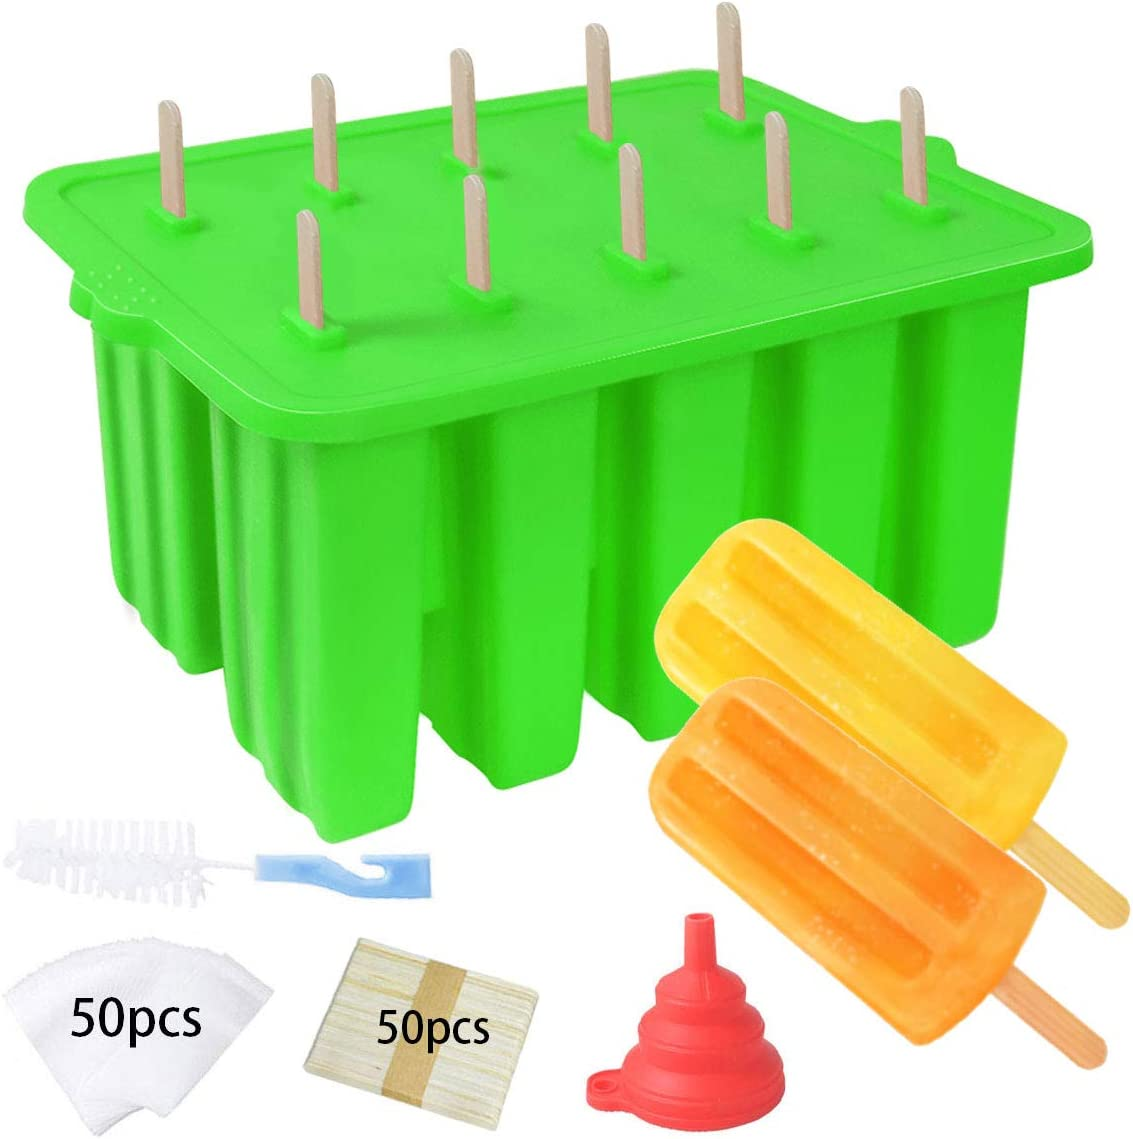 Silicone Popsicle Molds,Homemade Popsicle Maker,Food Grade Reusable Popsicle Mold for Kids,Ice Cream Mold,Ice Pop Molds Maker with Popsicle Sticks,Popsicle Bag,Brush,Funnel (10 Cavity,Green)